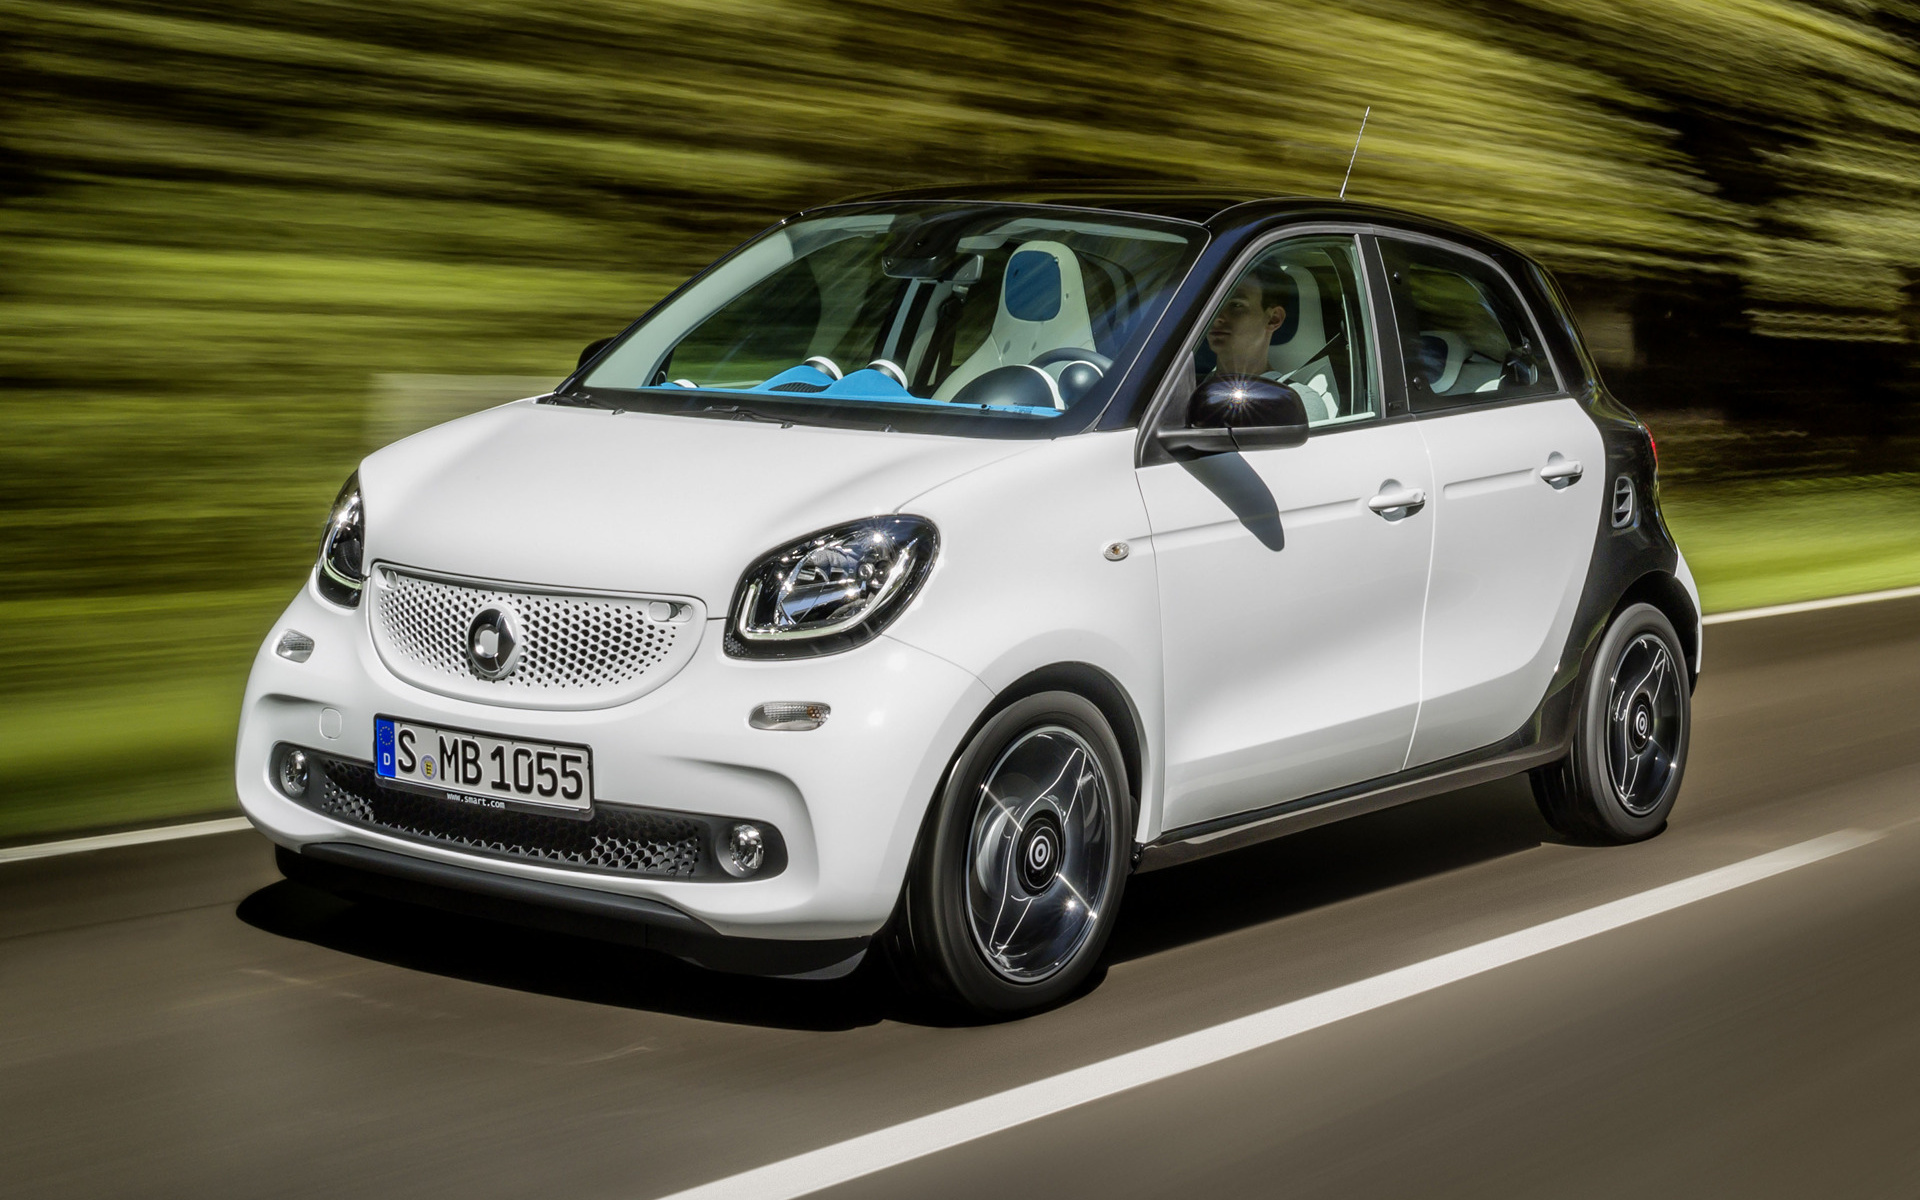 Four Cars Wallpapers Smart Forfour Proxy 2014 Wallpapers And Hd Images Car